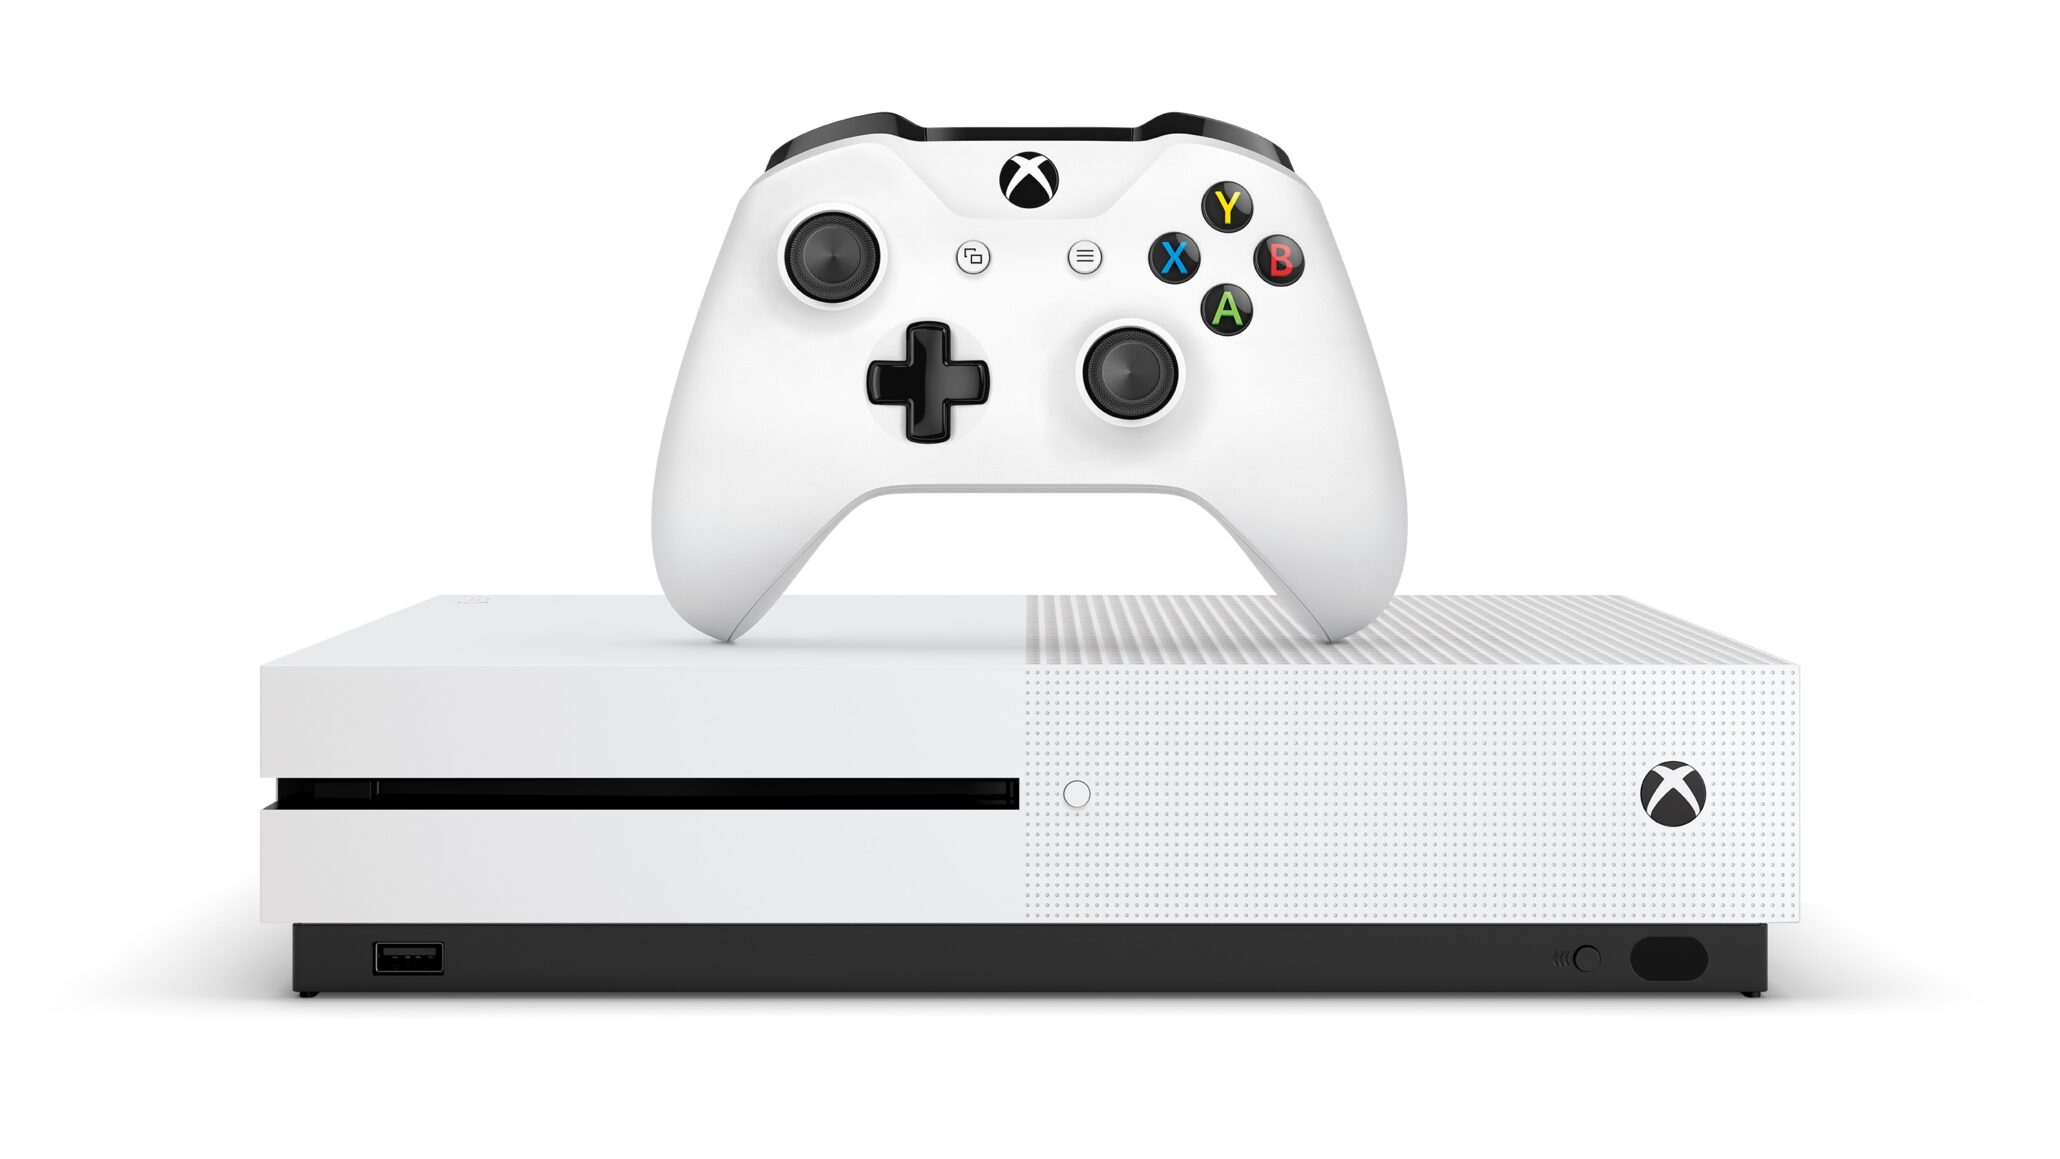 Xbox One S To Be Available At Lowest Price Ever During Black Friday